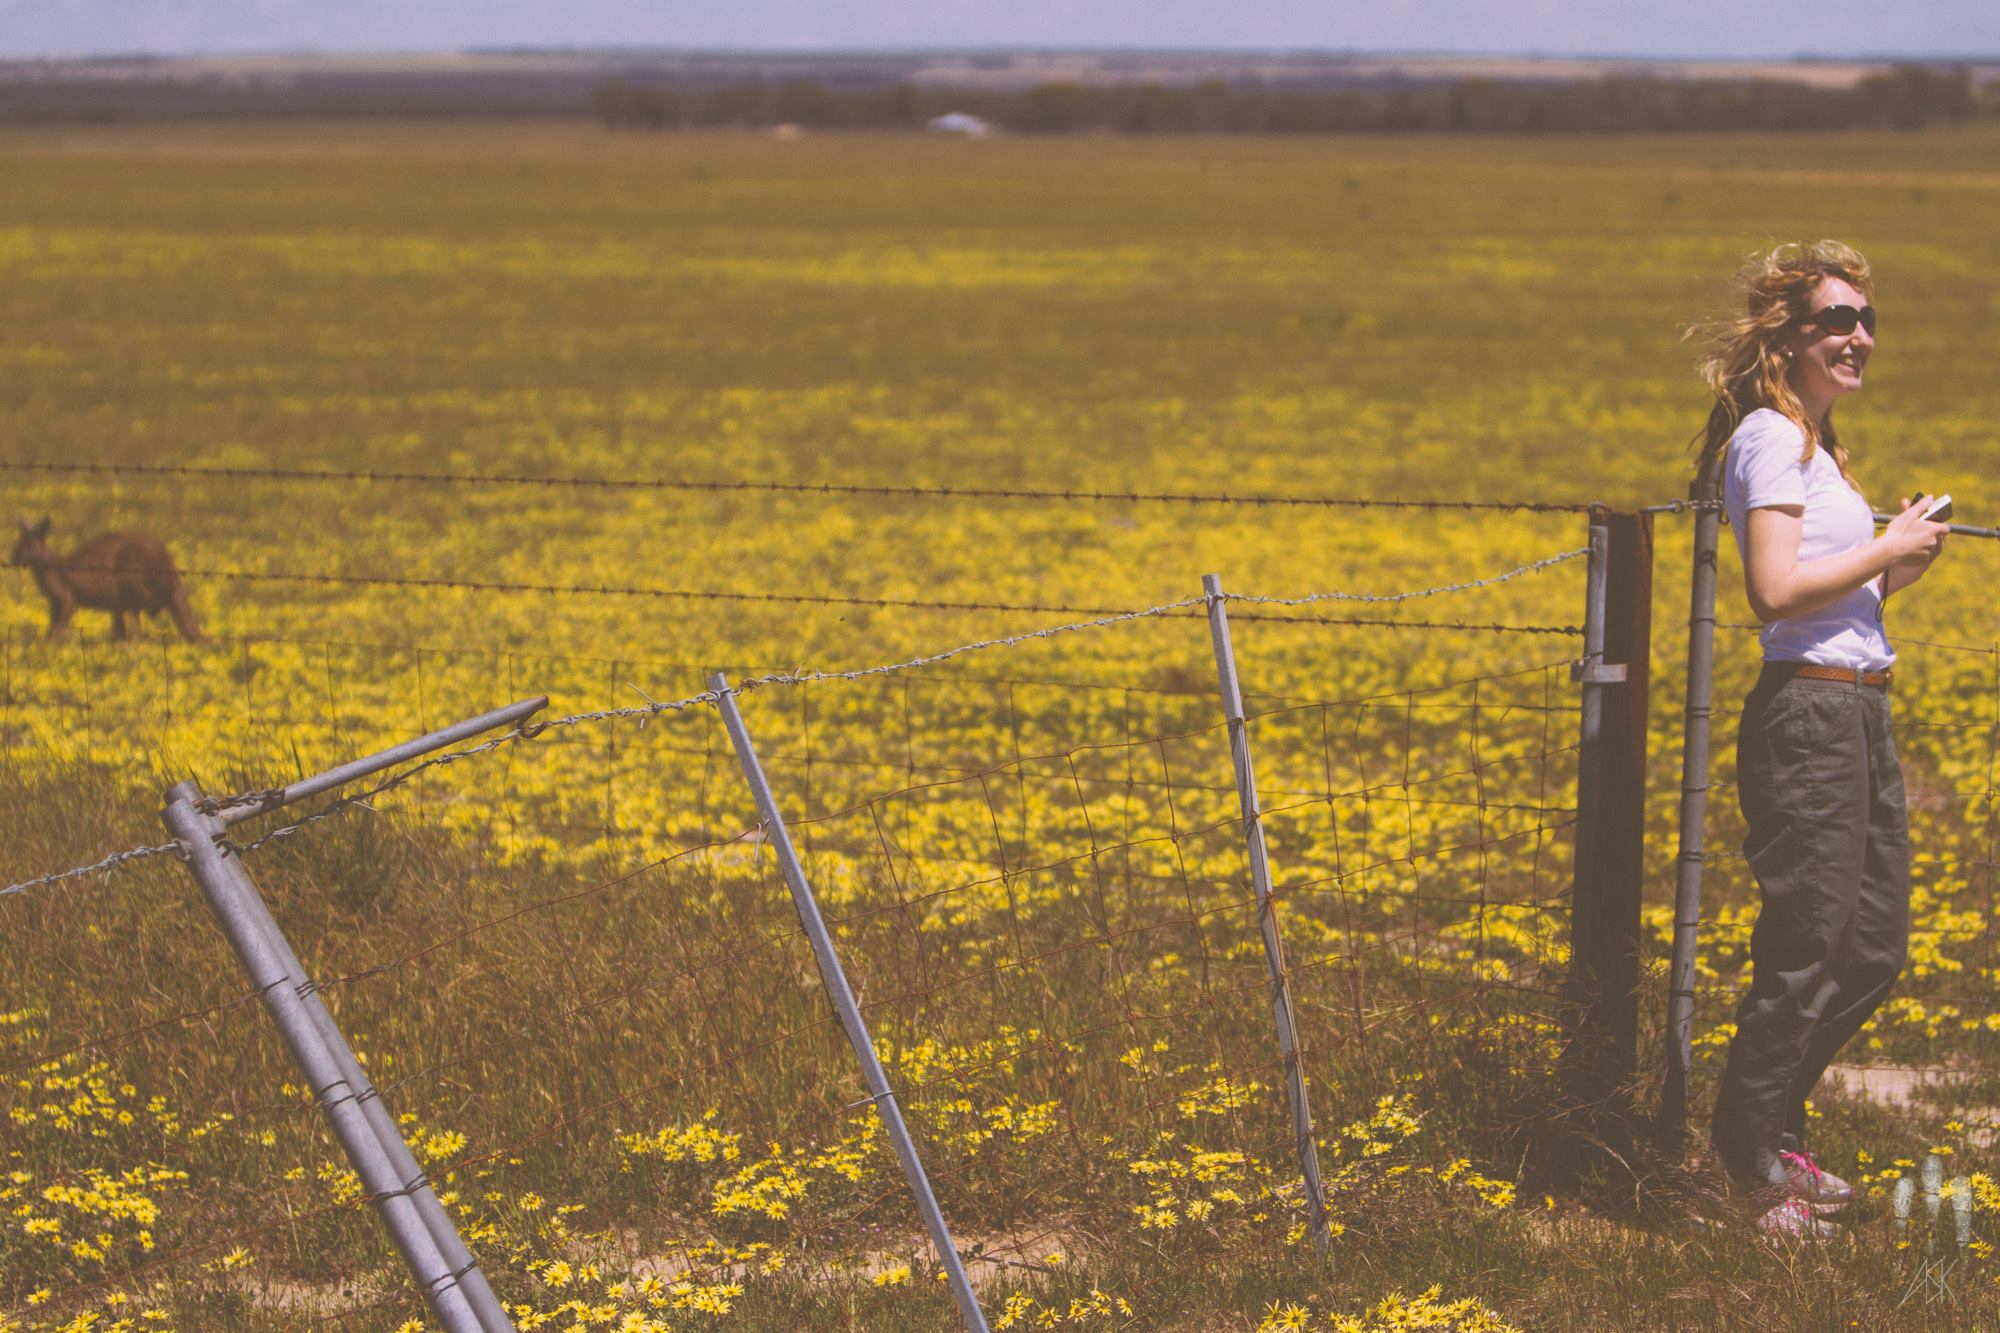 Mary with a kangaroo in a field of daisies. near Hyden, Western Australia, 2014. Photo by Angus Kennedy.